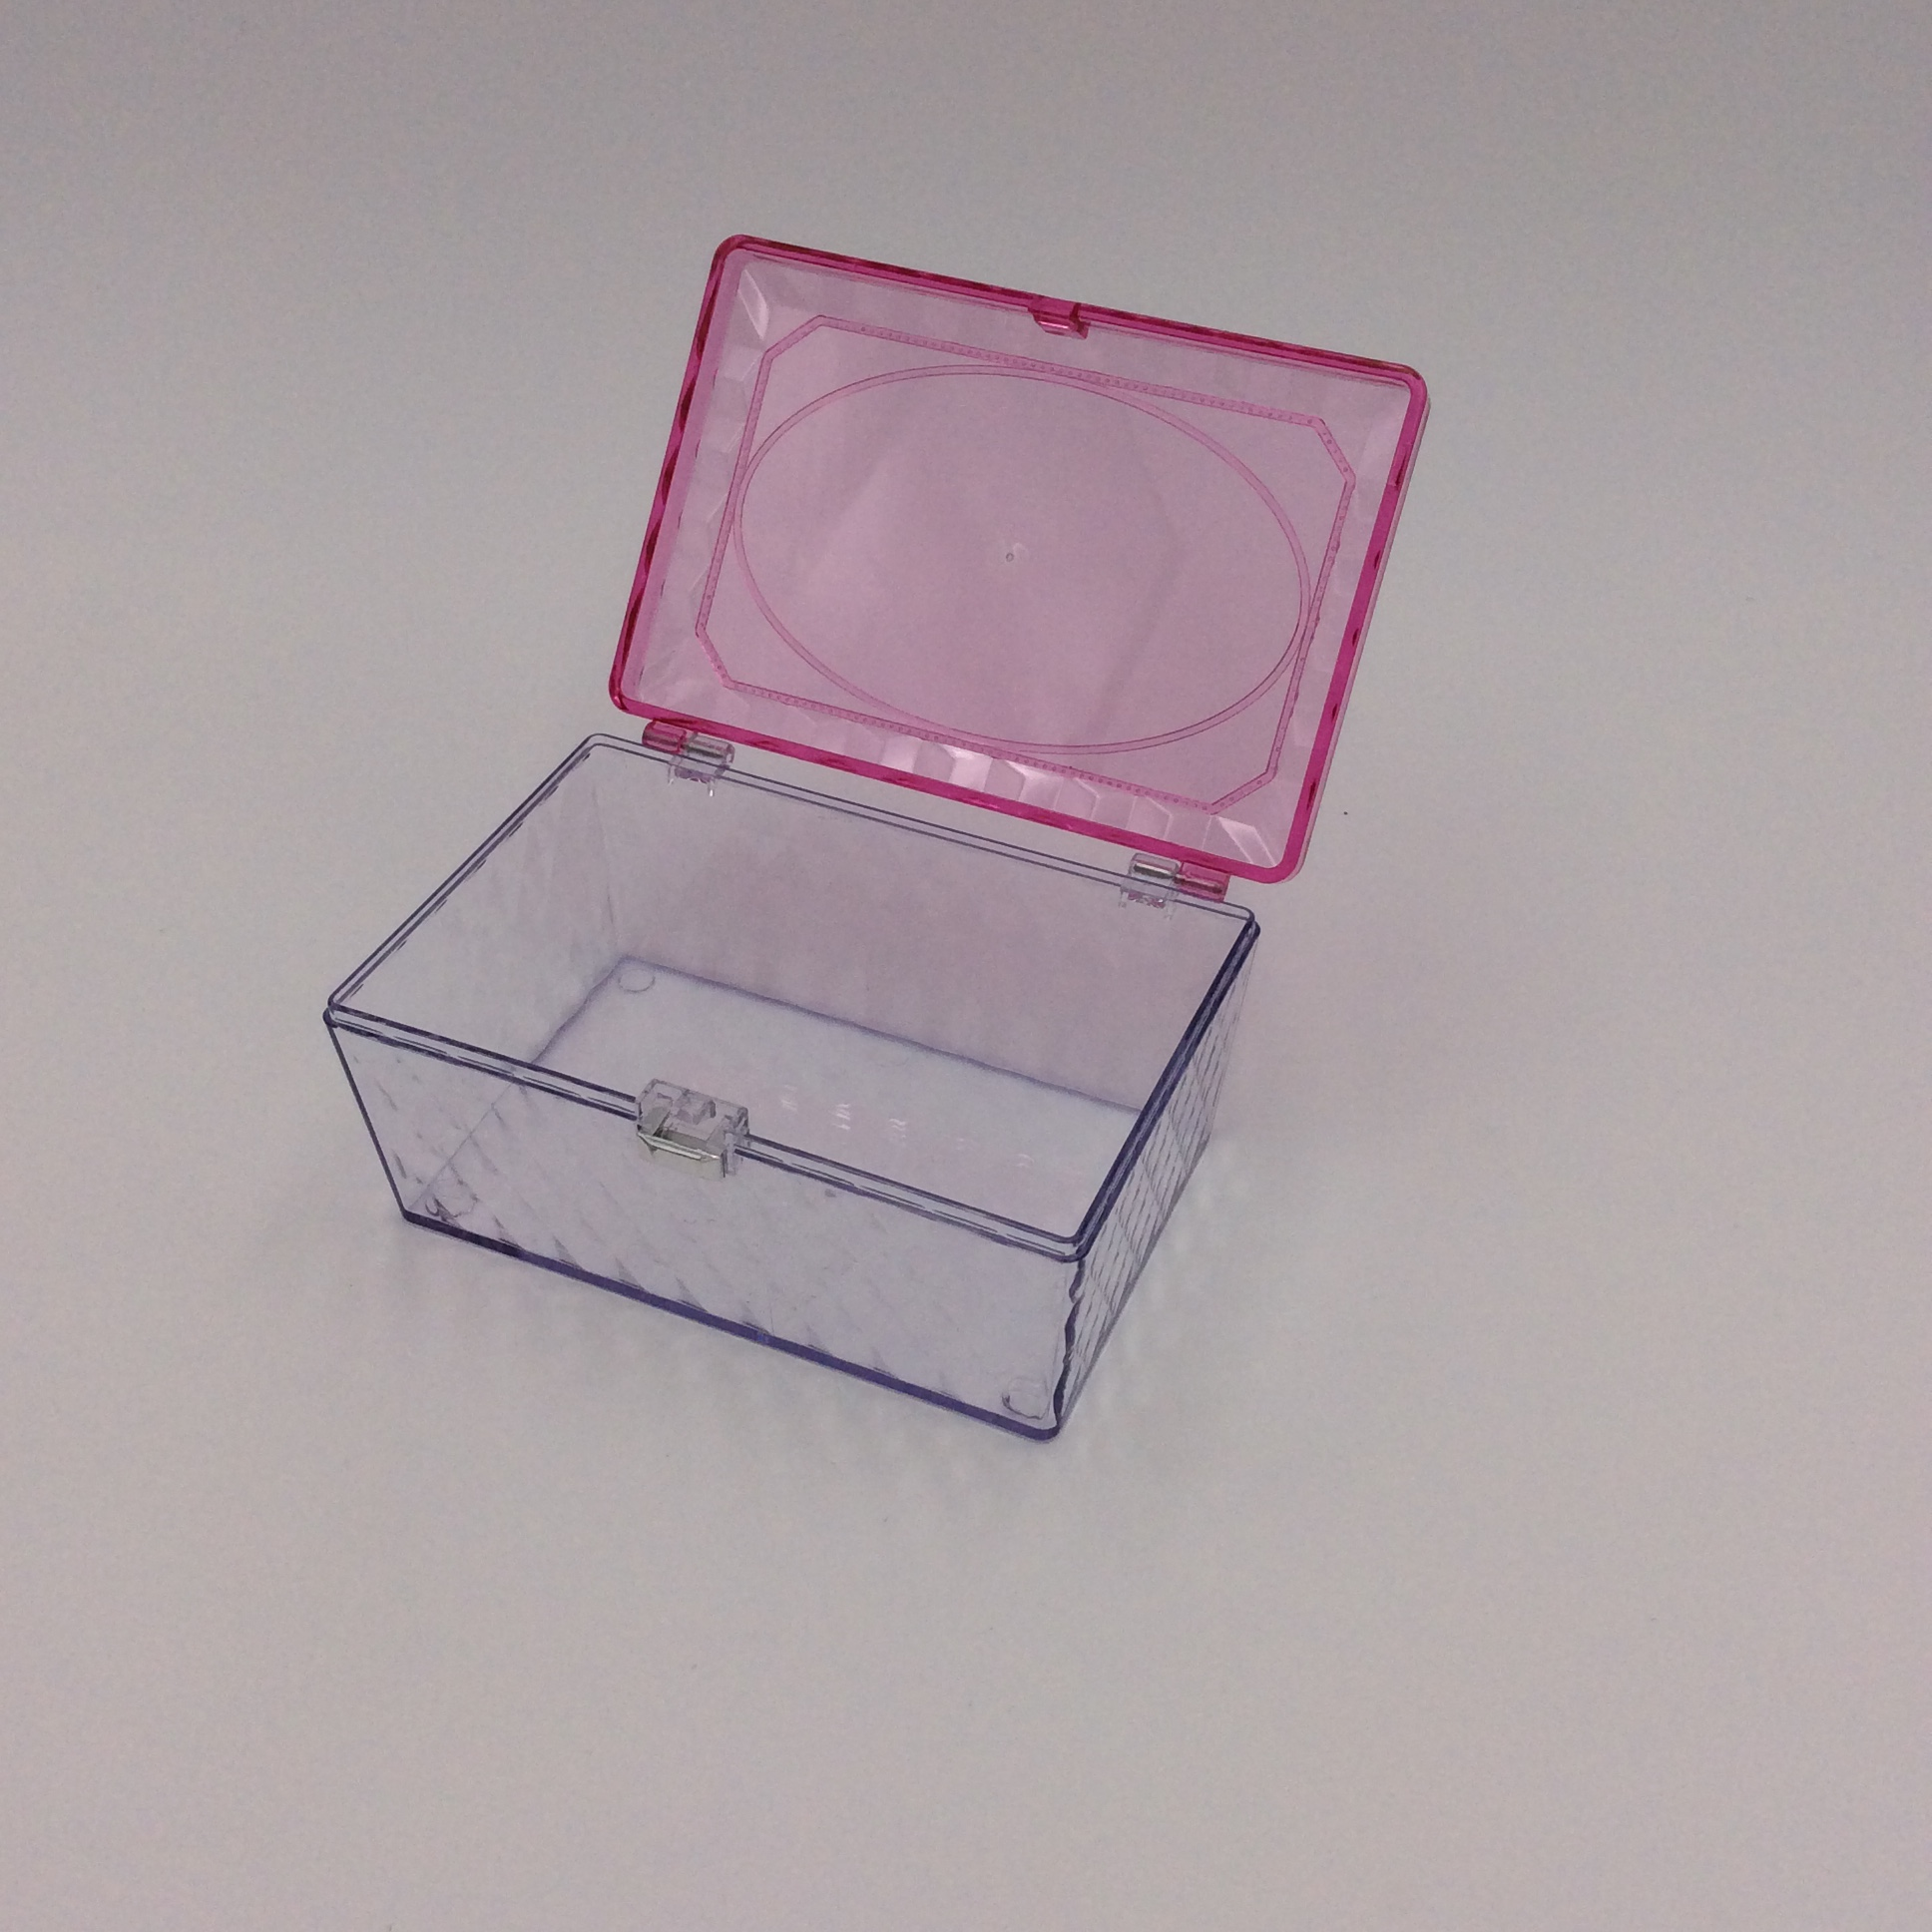 Box Plastic Storage